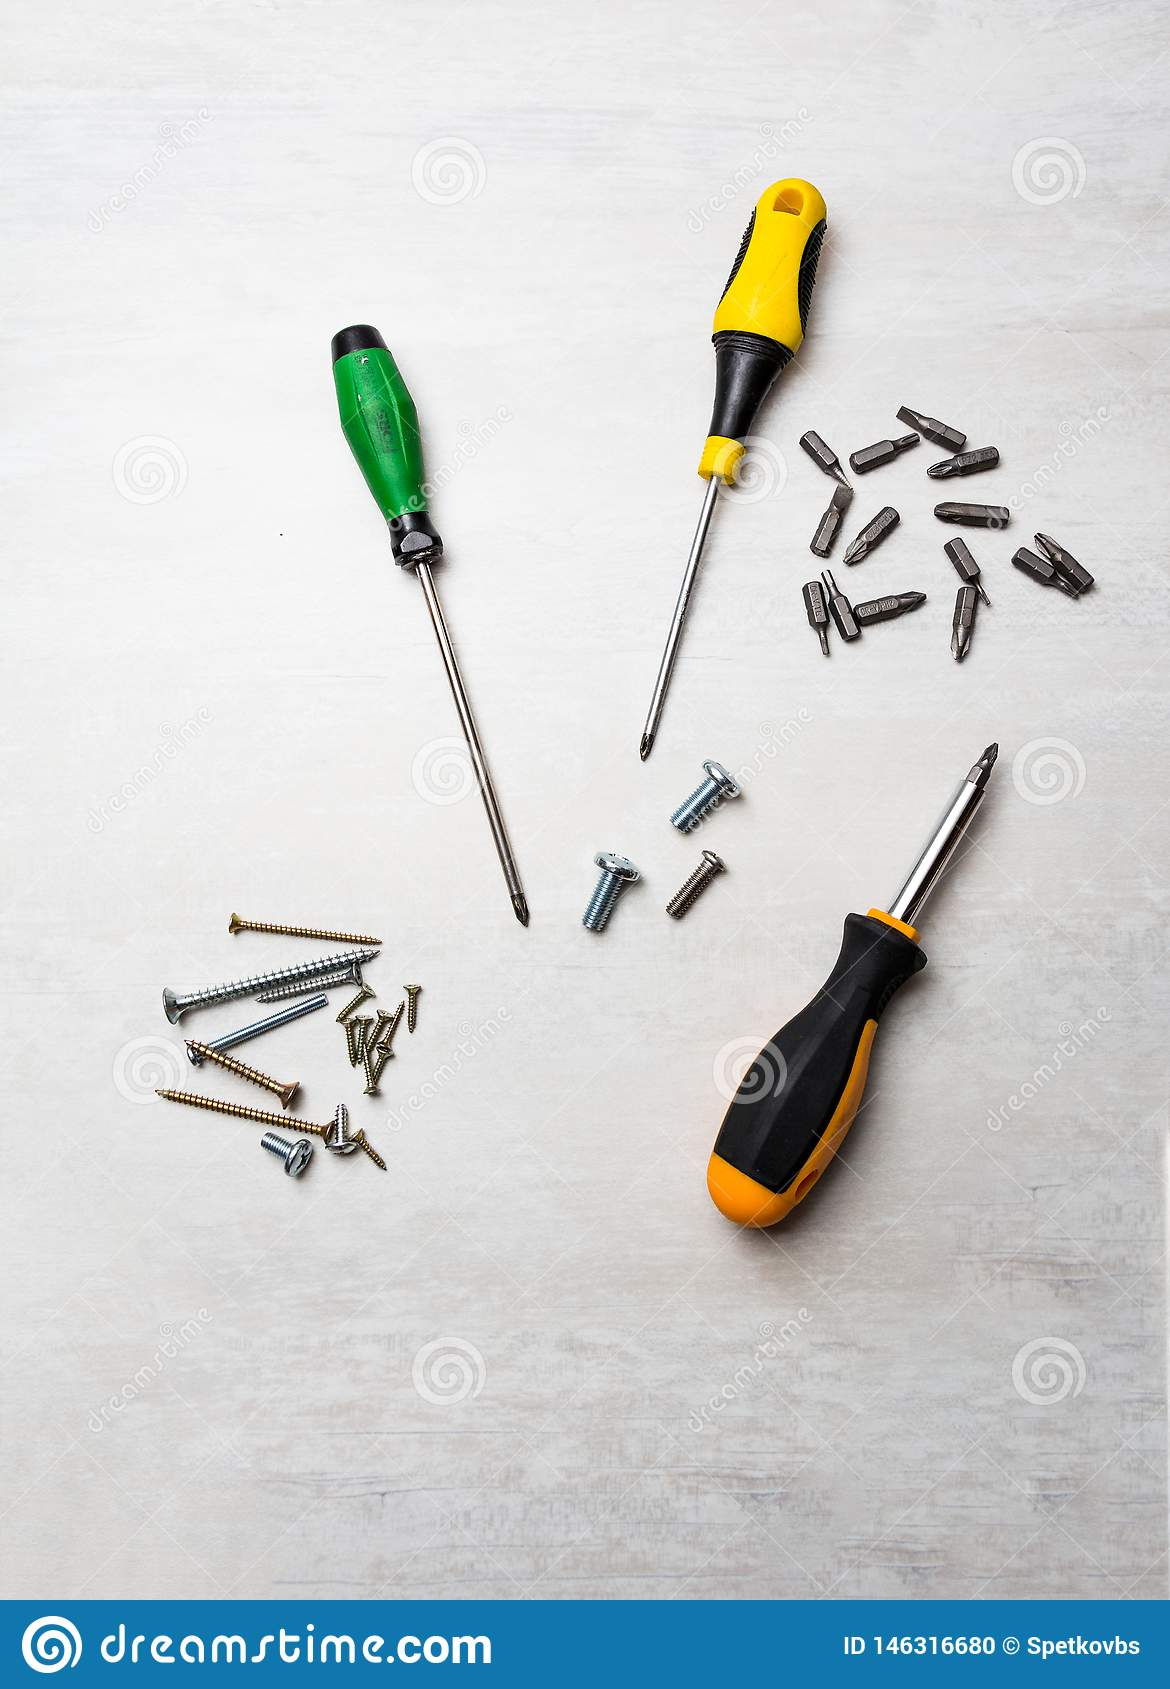 Screwdrivers and bits on desk background